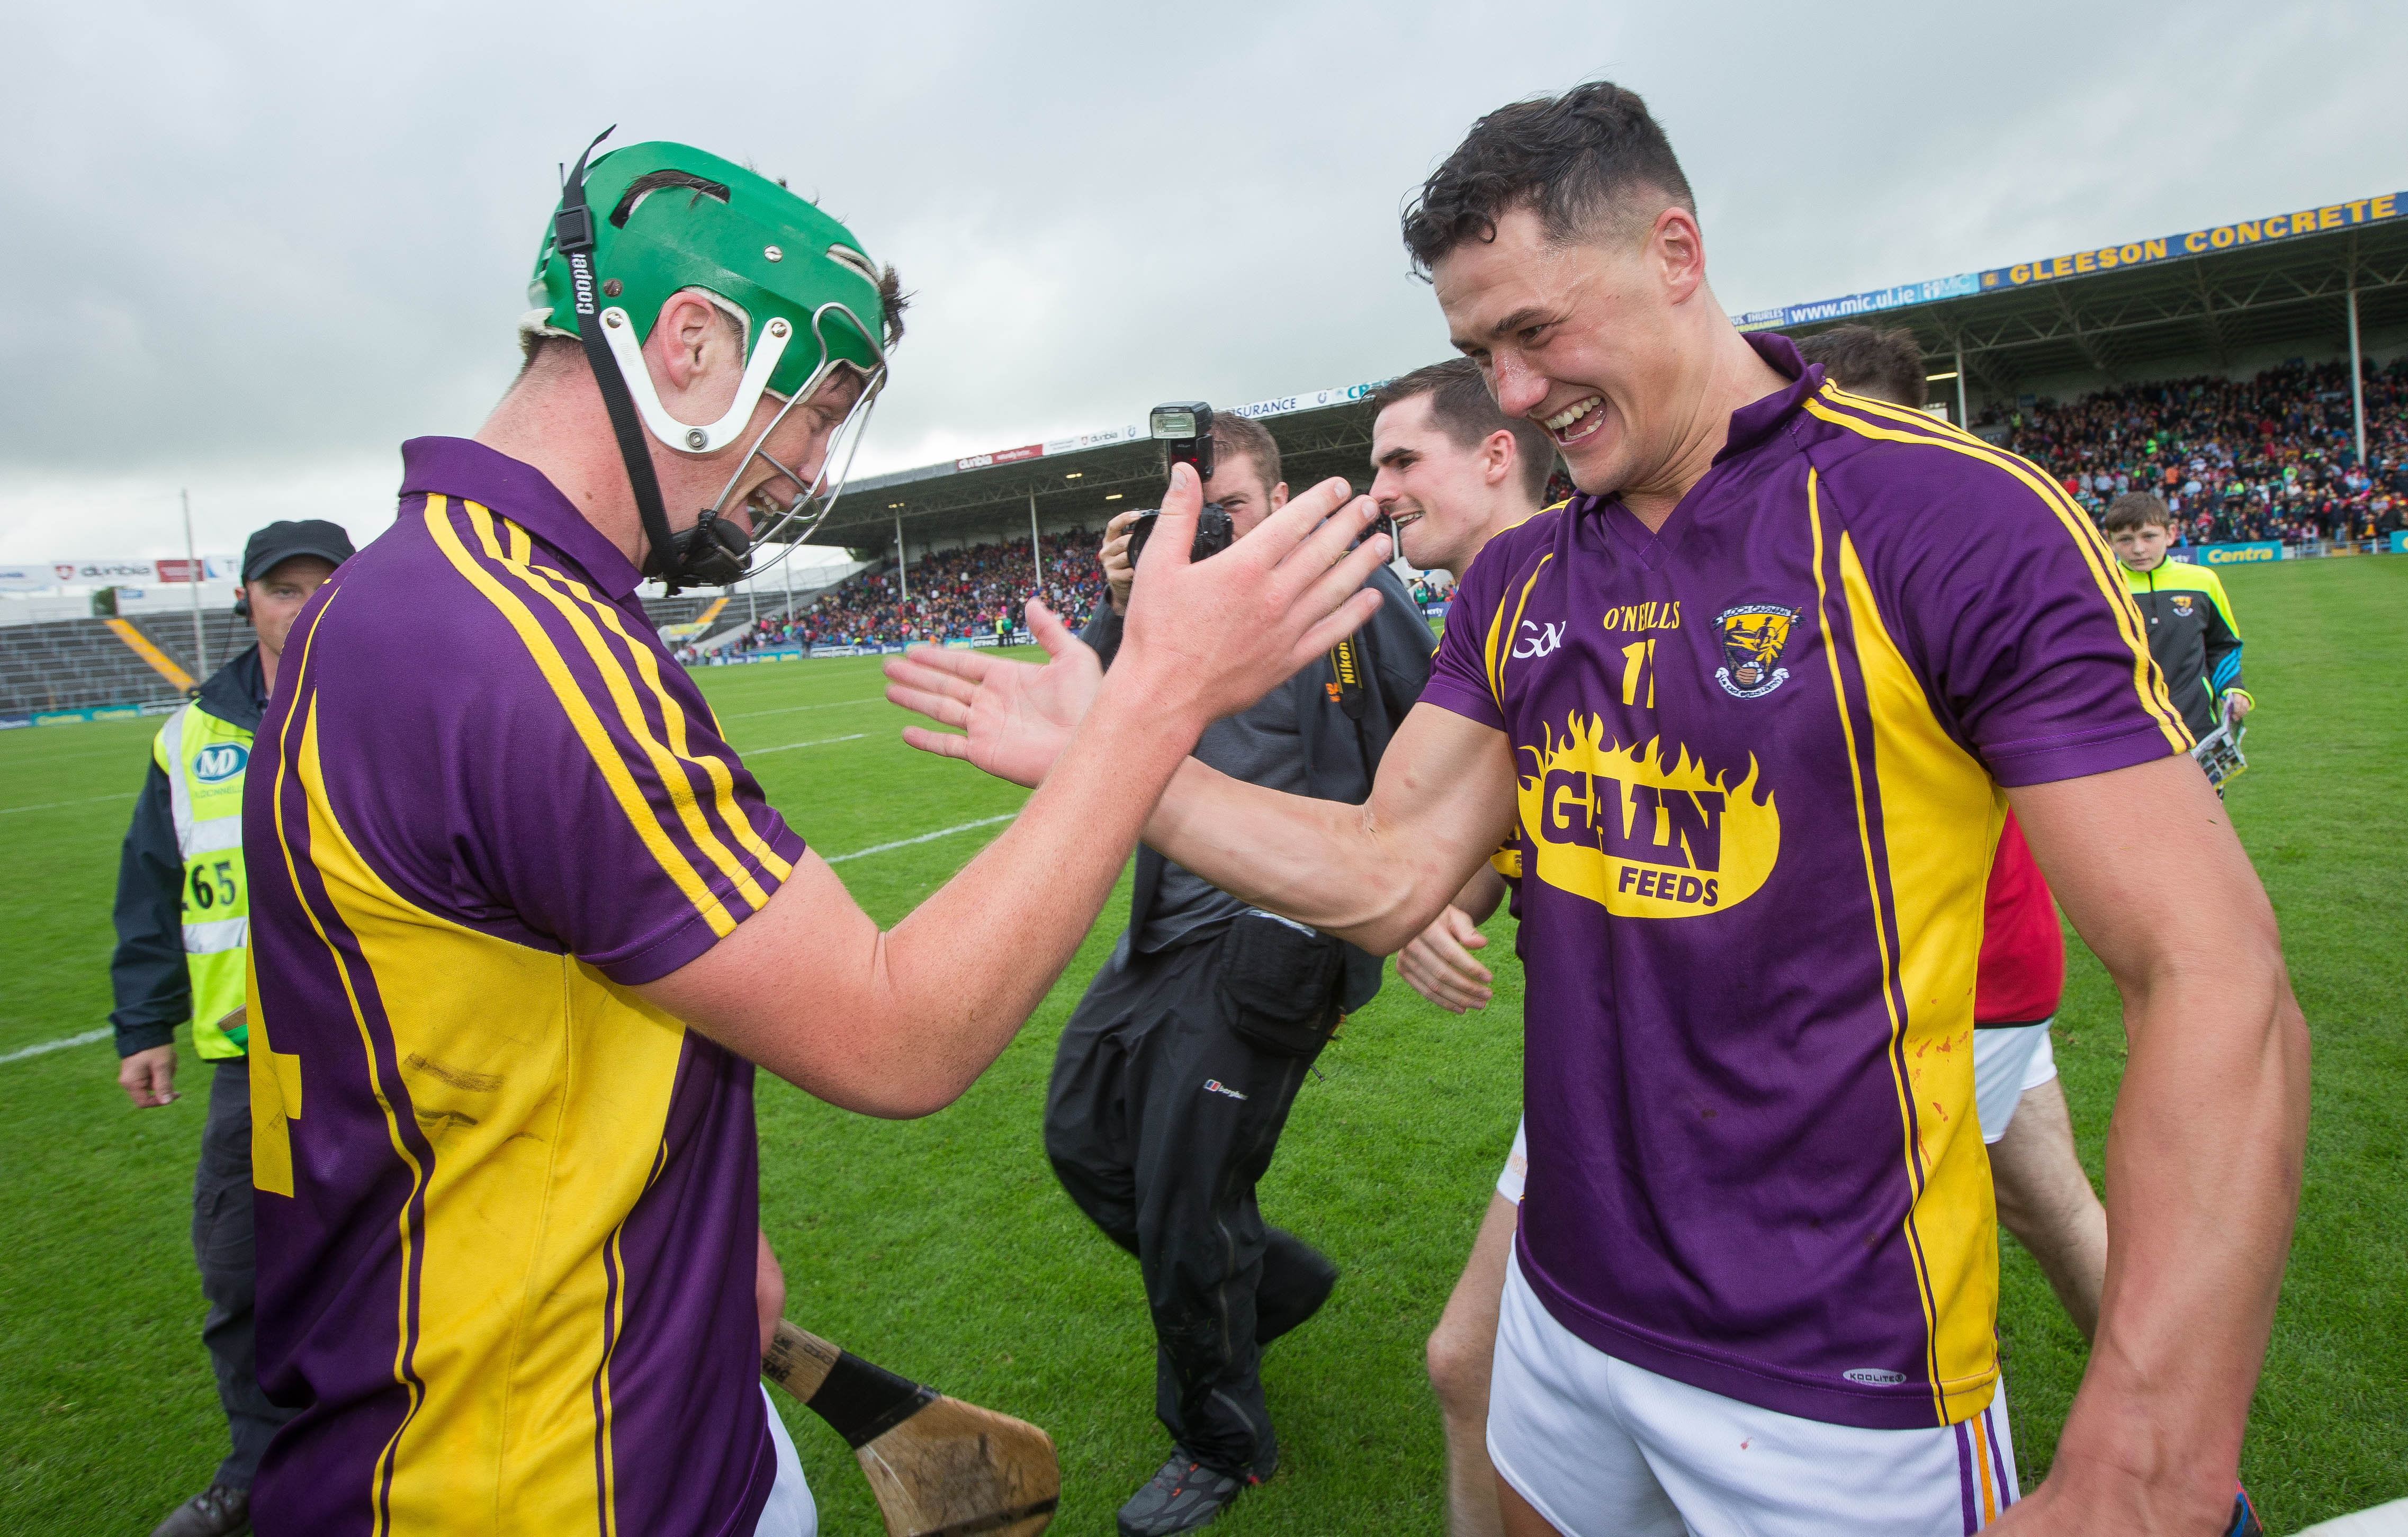 All-Ireland Senior Hurling Championship Qualifiers Round 2, Semple Stadium, Thurles, Tipperary 9/7/2016 Cork vs Wexford Wexford's Conor McDonald and Lee Chin celebrate after the game Mandatory Credit ©INPHO/Ryan Byrne